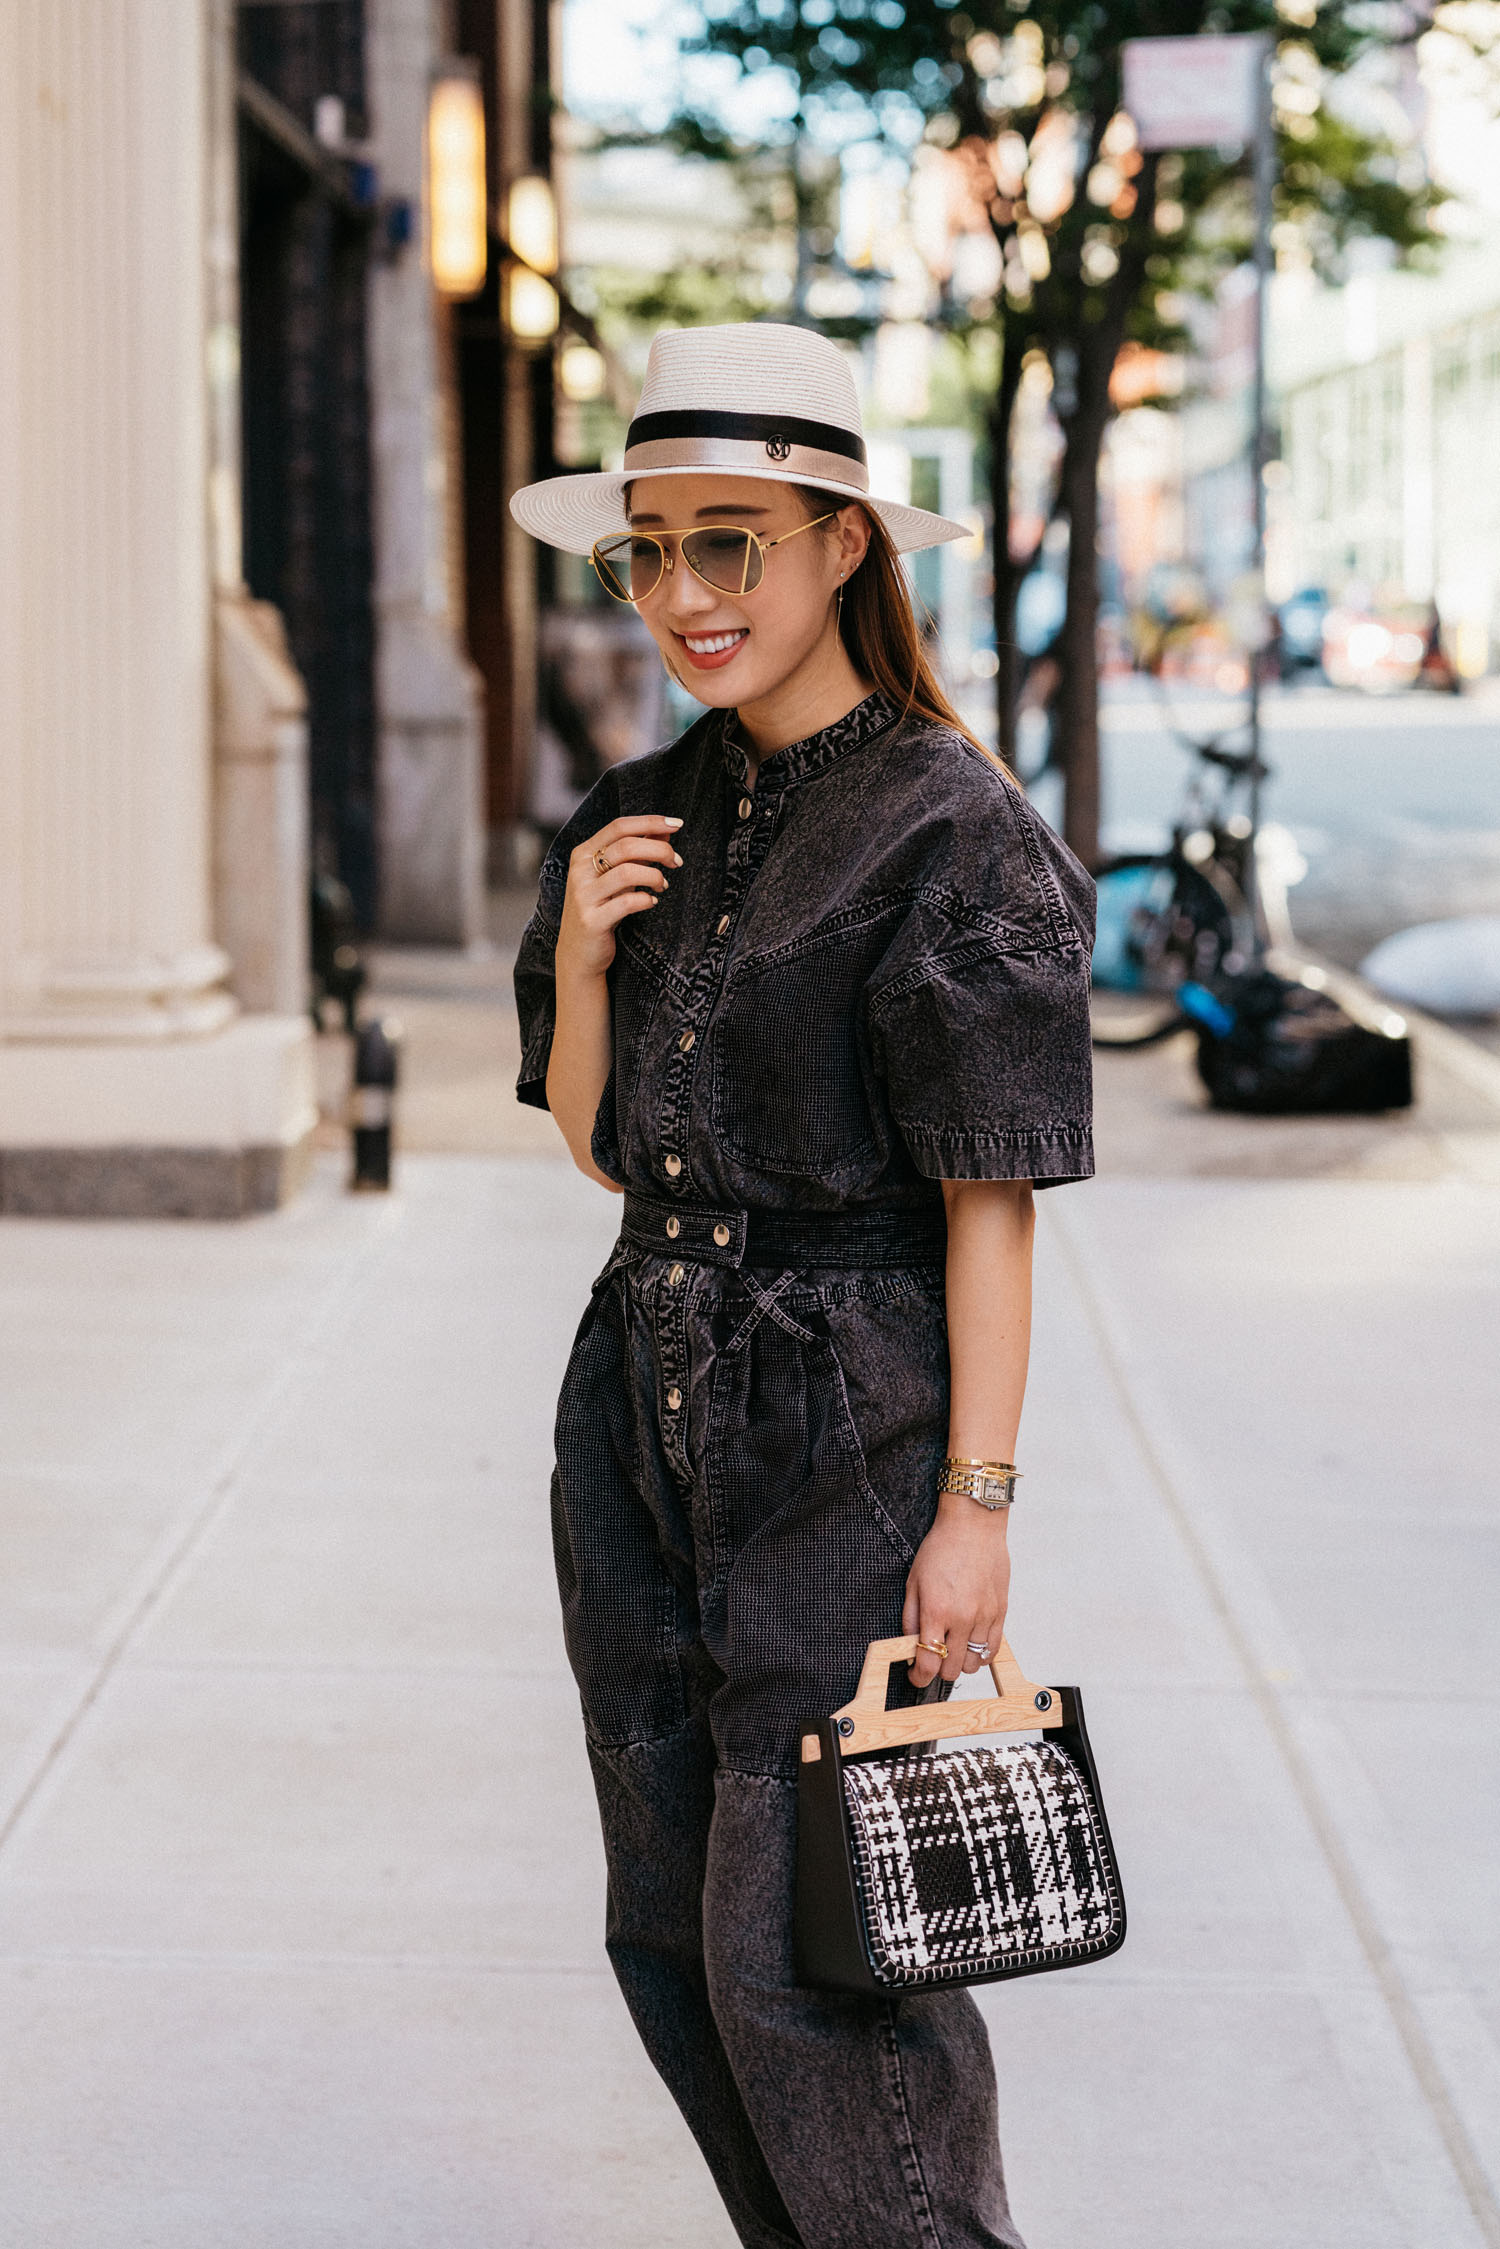 Isabel Marant Jumpsuit, Charles & Keith Bag, Charles & Keith Shoes, Maison Michel Hat, Charles & Keith Sunglasses